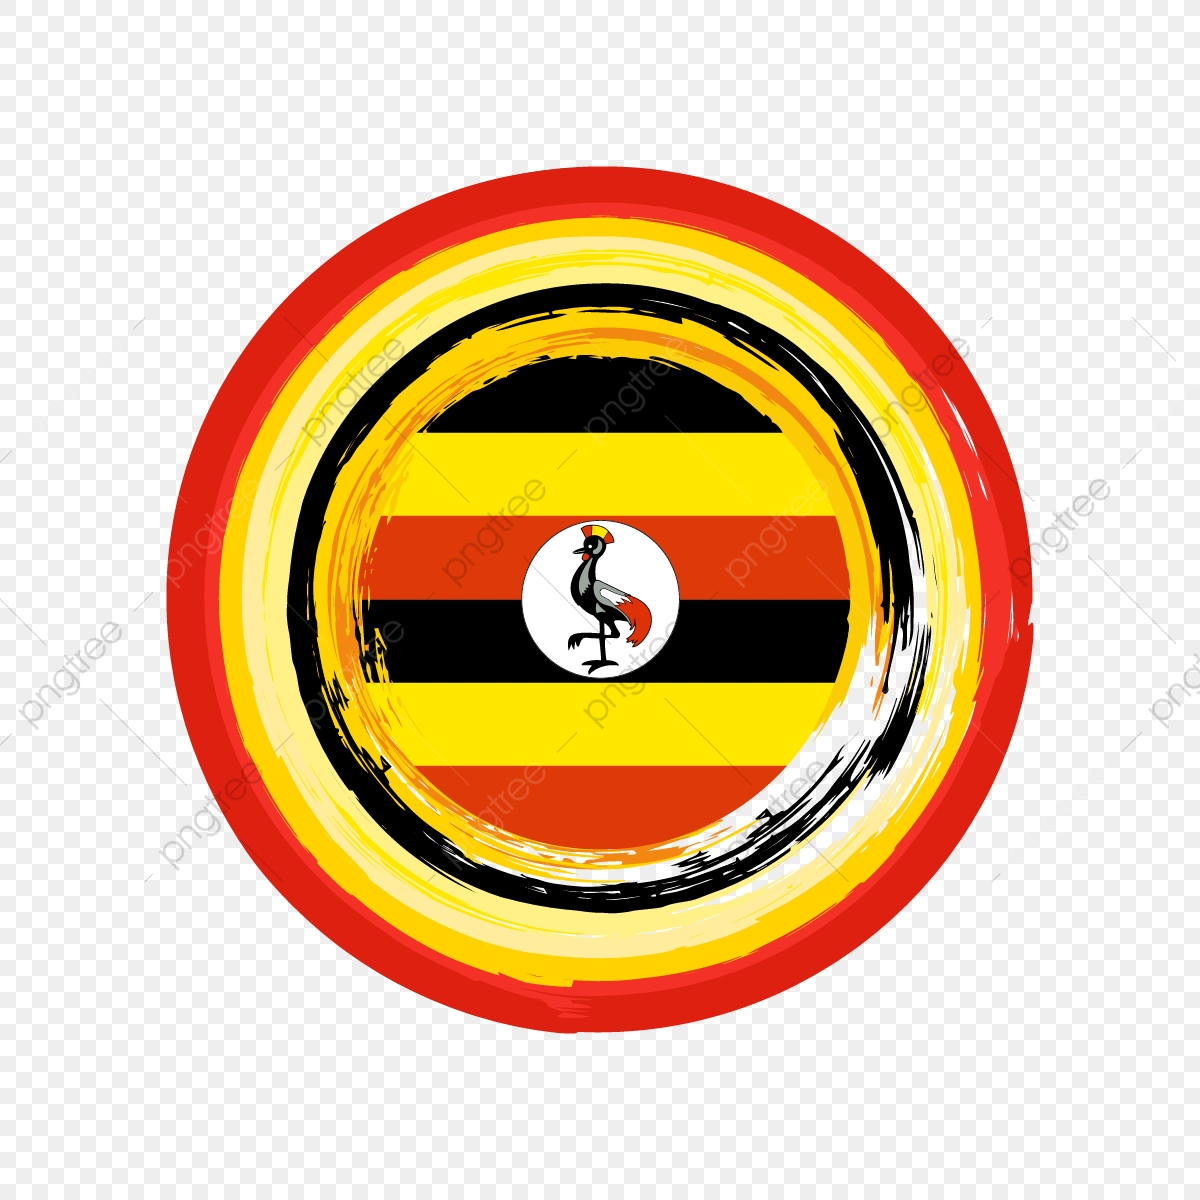 Uganda Flag Of Circle Brush Stroke Decoration, Uganda Flag.